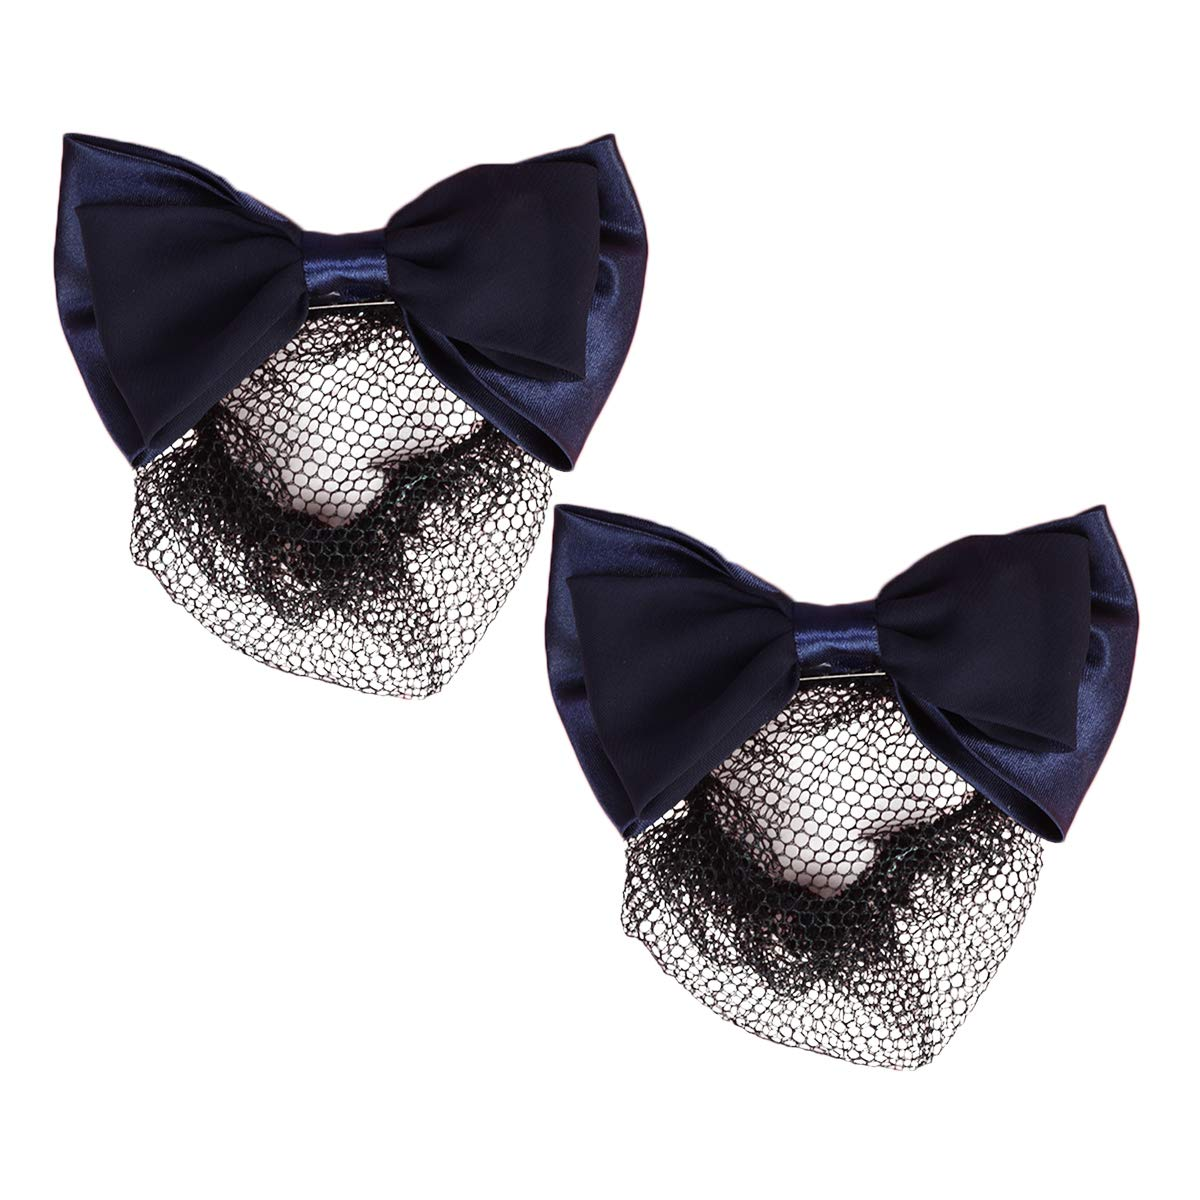 Frcolor Hair Snood Net Barrette Mesh Clip Elastic Butterfly Bun Bow for Lady Dance Office 2pcs (Black)